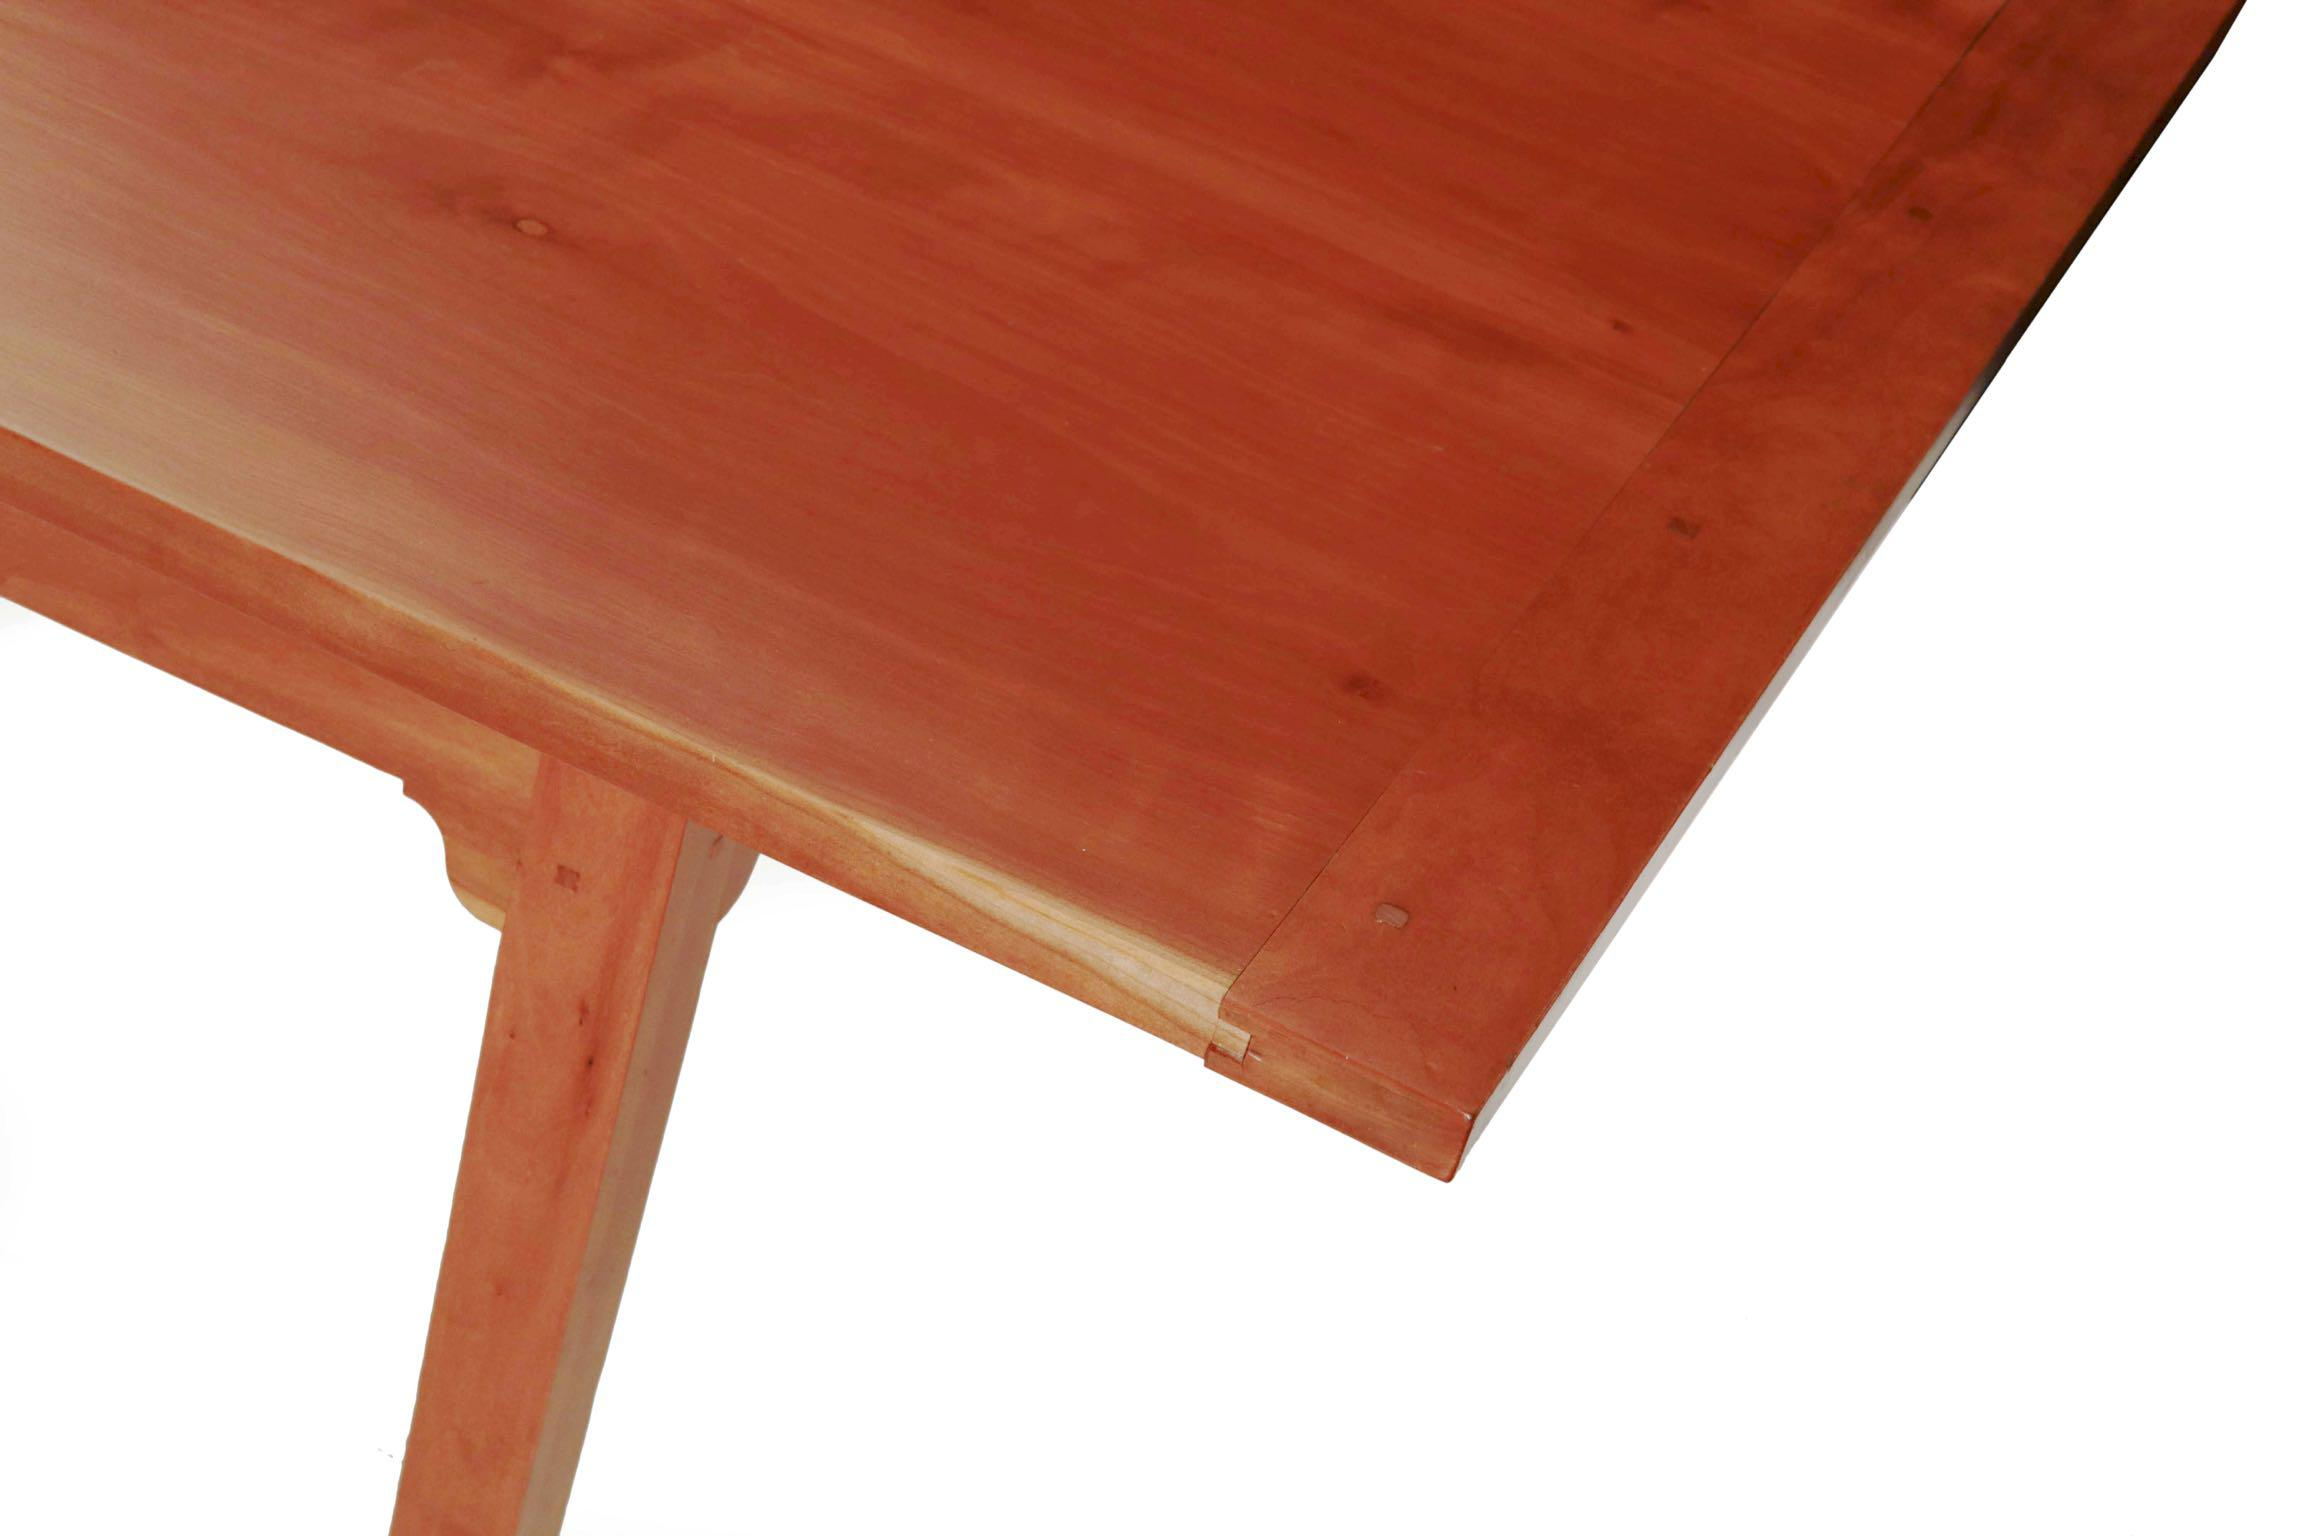 Shaker Style Handmade Cherry Dining Room Table W Pegged Joints